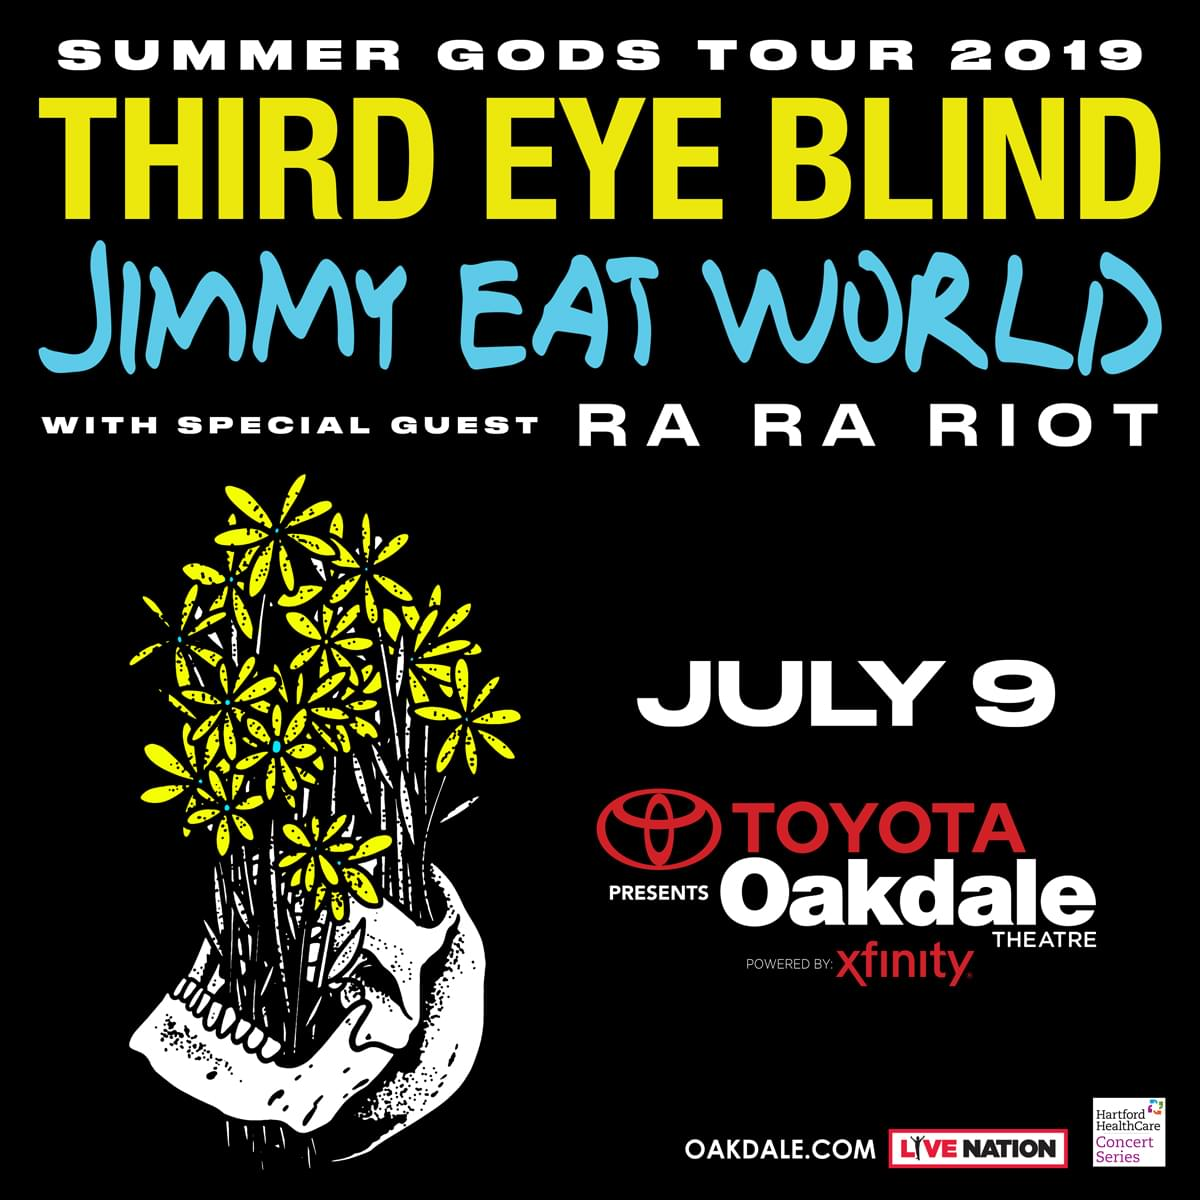 Enter to win tickets to Third Eye Blind and Jimmy Eat World with special guests Ra Ra Riot